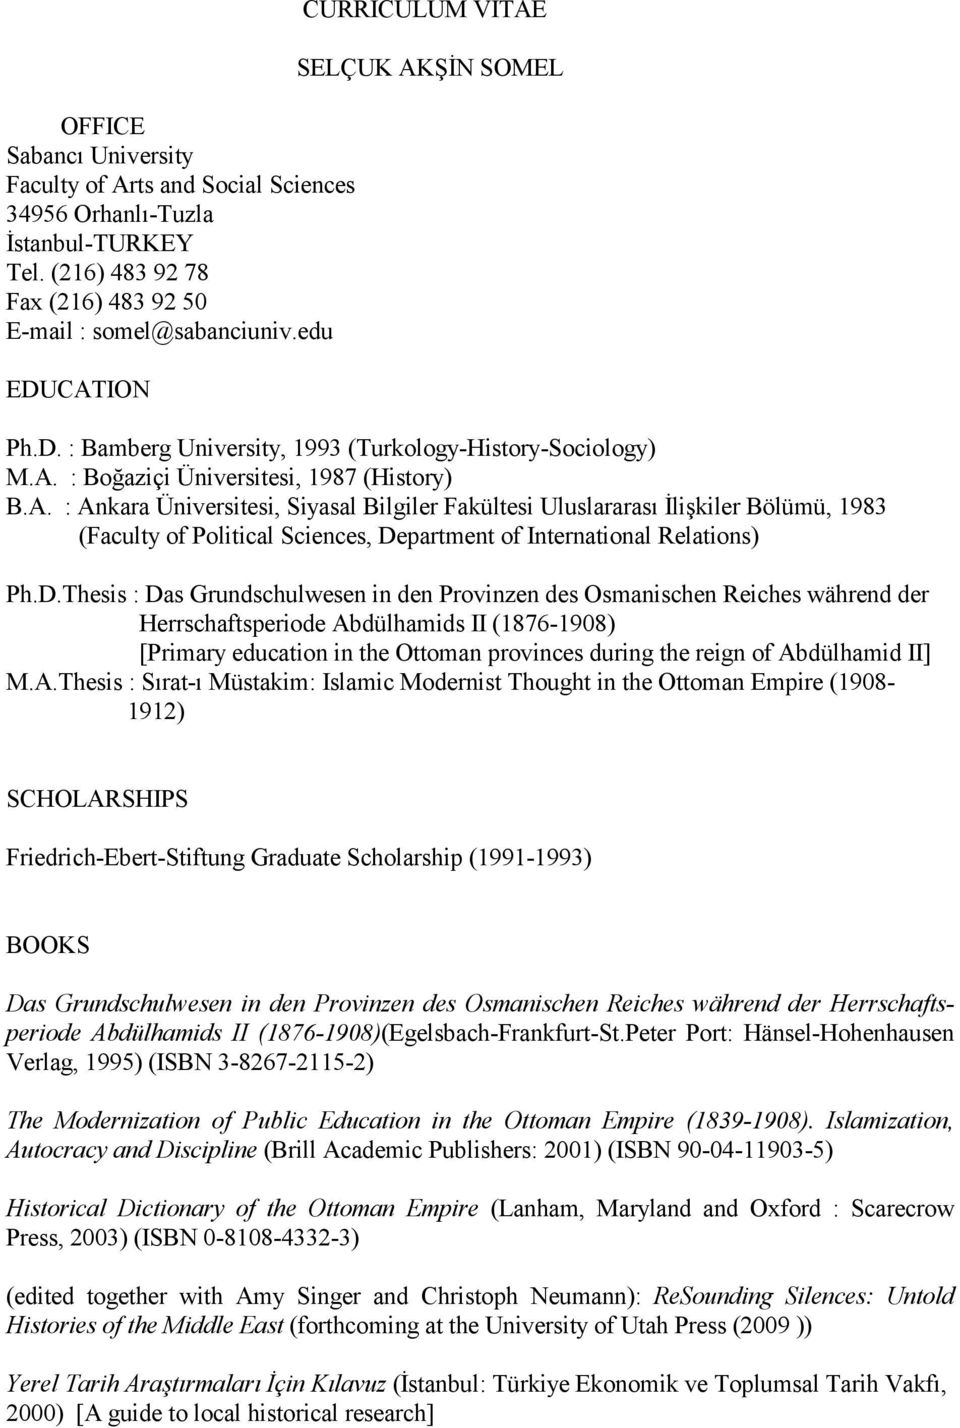 D.Thesis : Das Grundschulwesen in den Provinzen des Osmanischen Reiches während der Herrschaftsperiode Abdülhamids II (1876-1908) [Primary education in the Ottoman provinces during the reign of